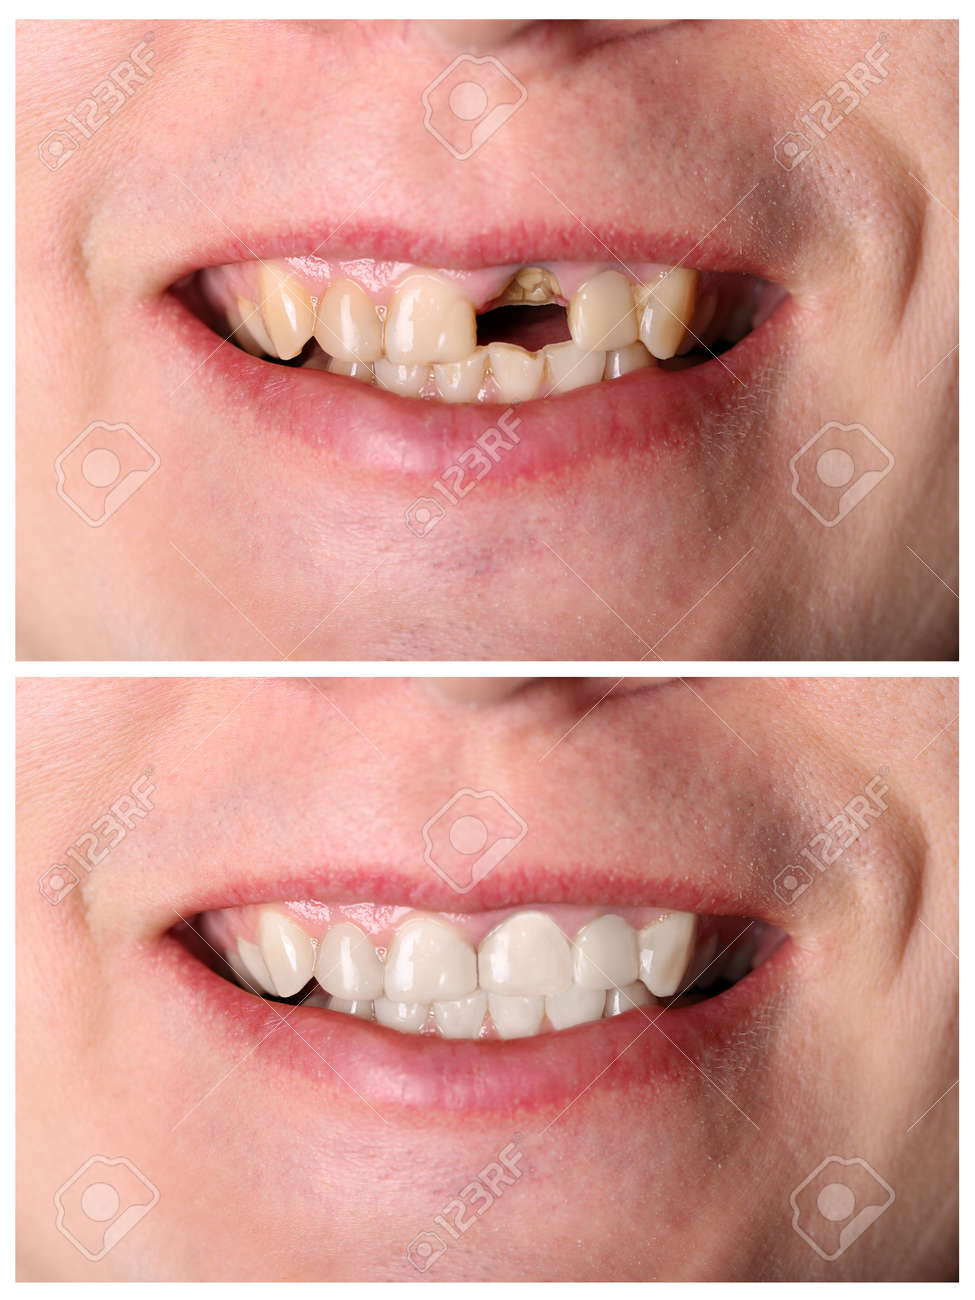 Incisive tooth restoration before and after treatment - 35891605